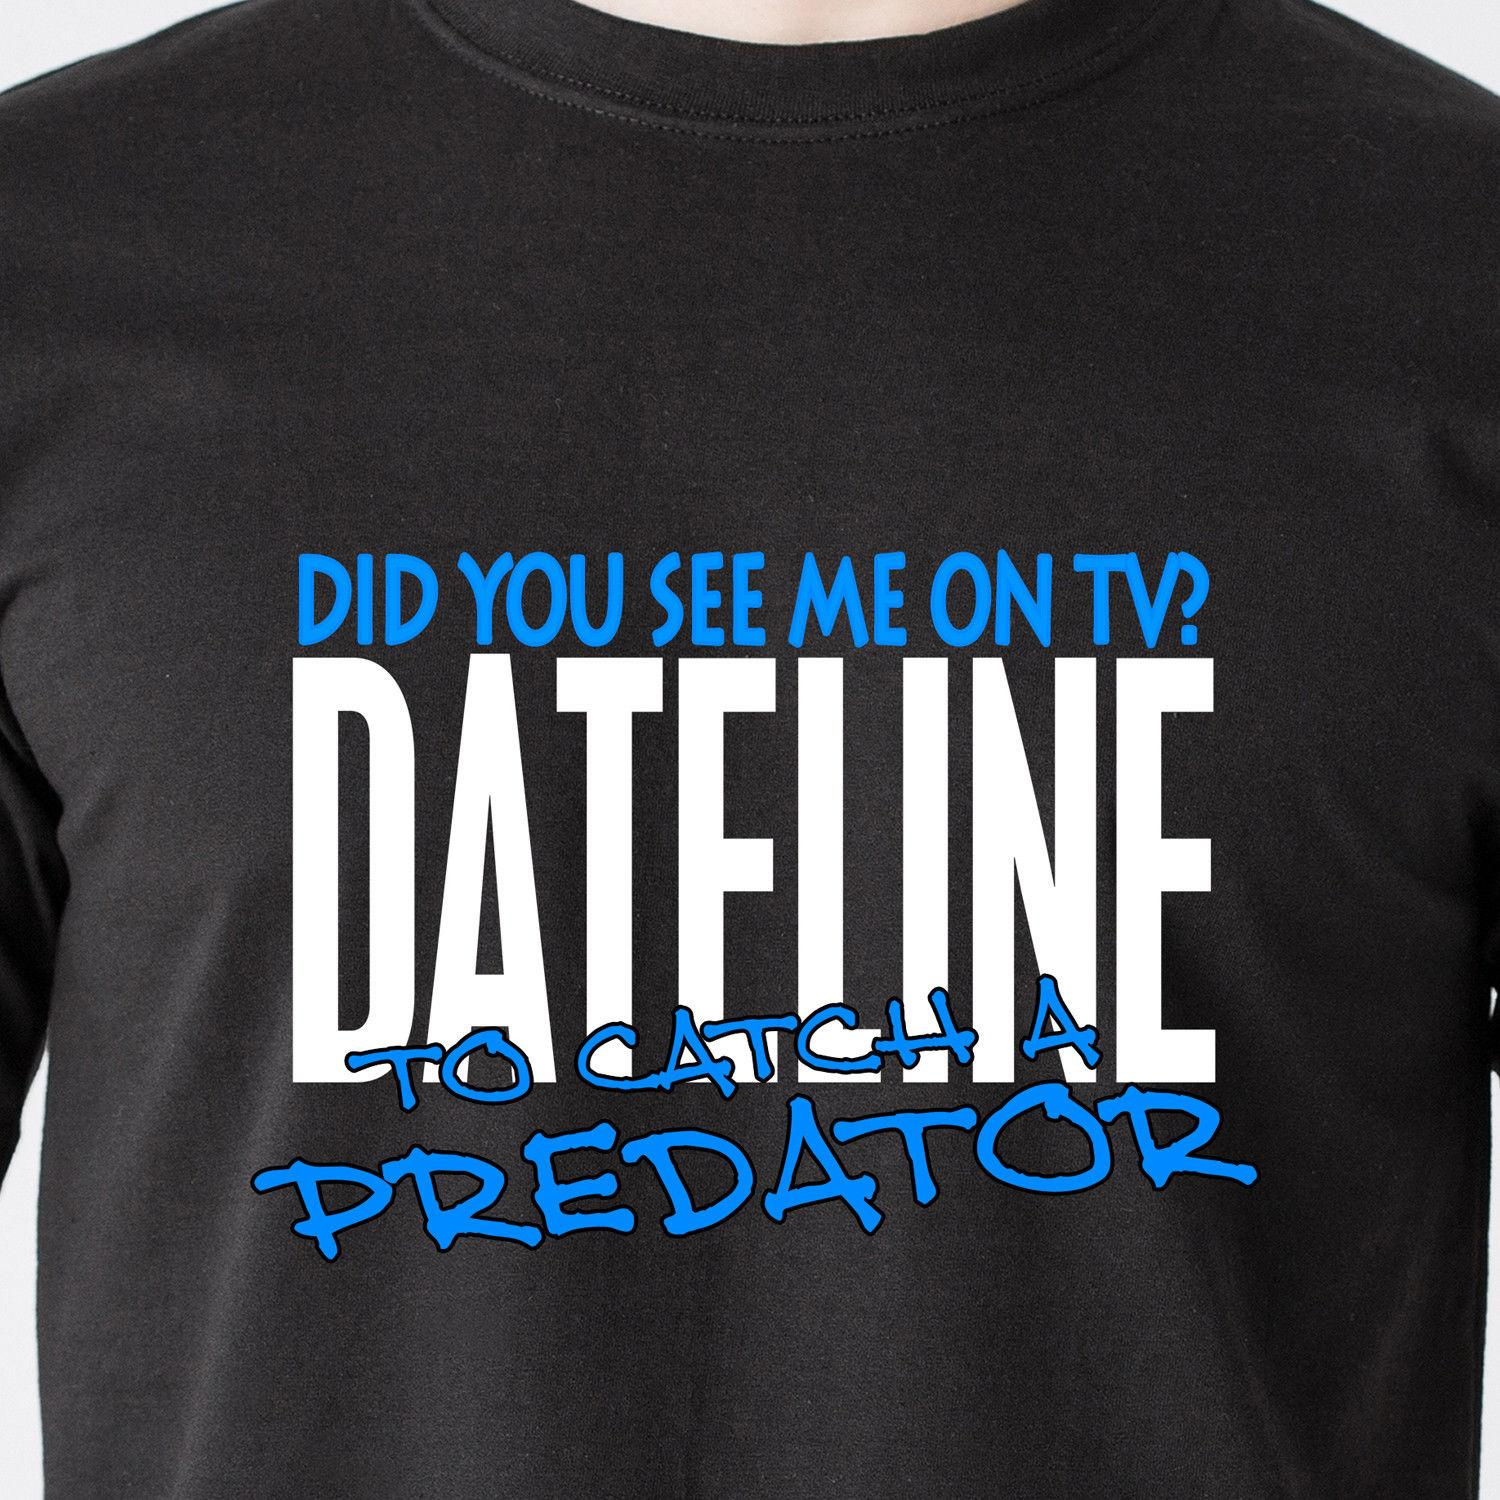 6c055a5e DID YOU SEE ME ON TV? DATELINE TO CATCH A PREDATOR Nbc Chris Retro Funny T  ShirtFunny Unisex Casual Tshirt Top Shirt T Shirt Funny T Shirts Cheap From  ...